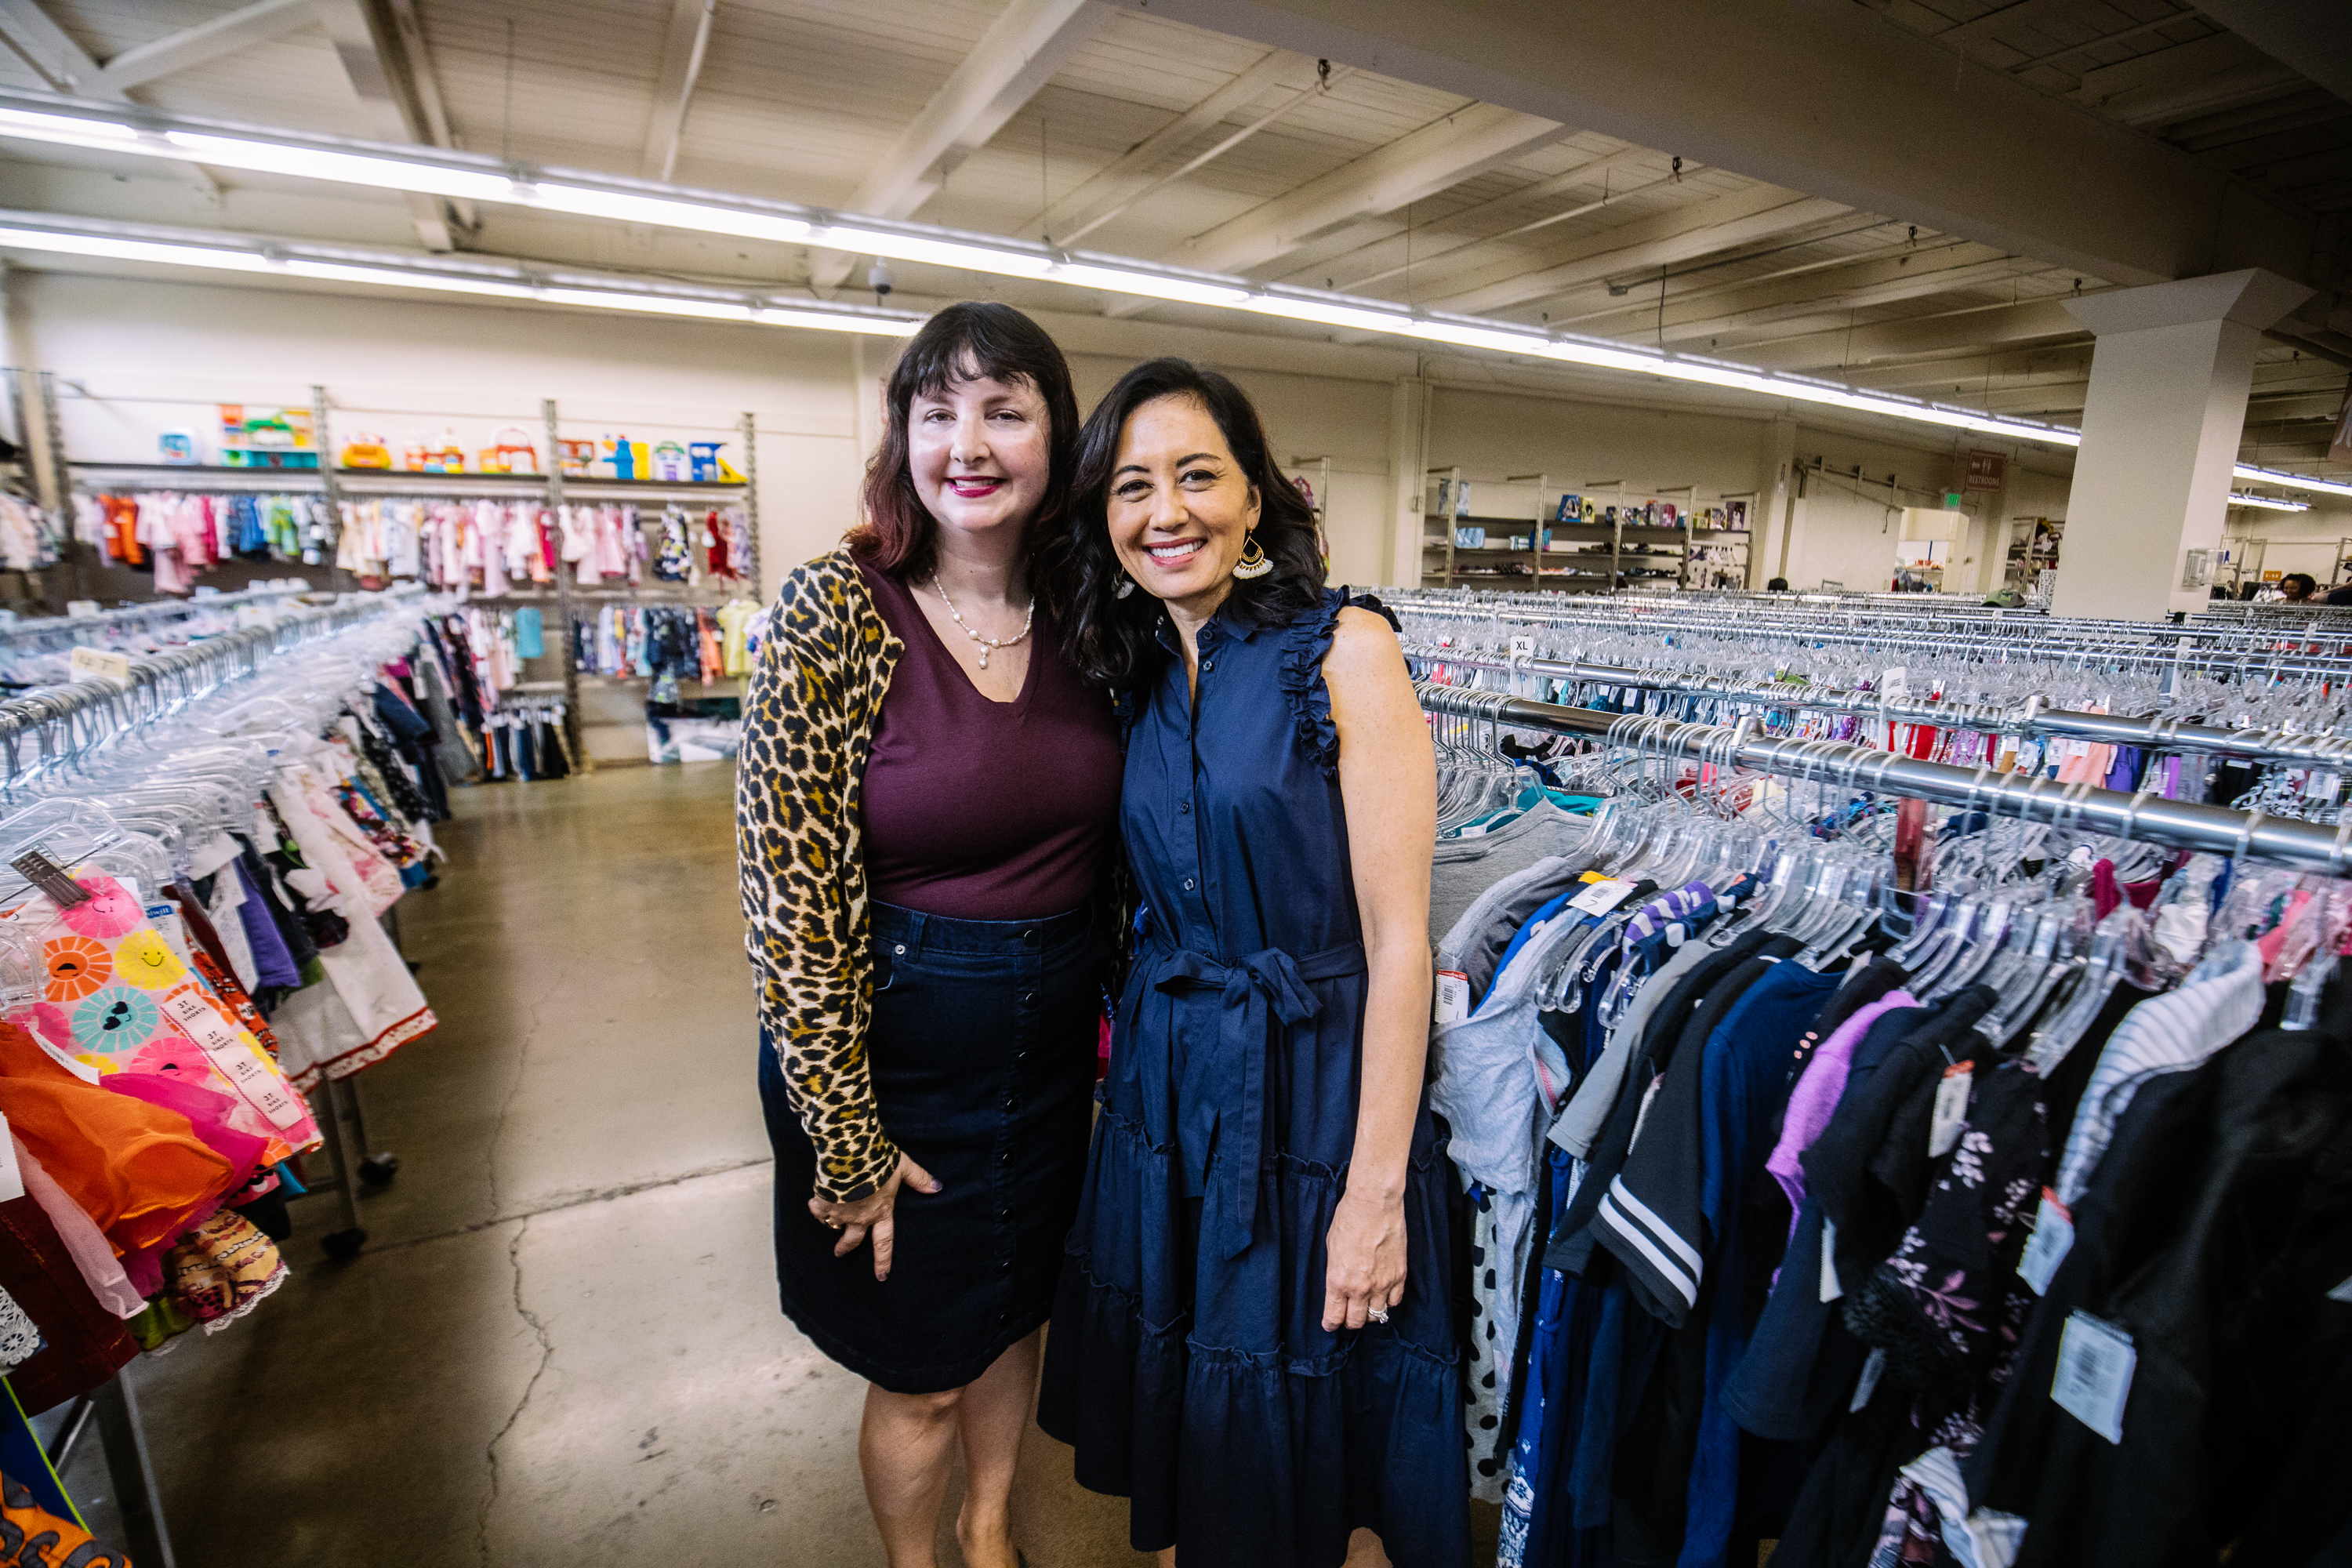 Seattle Goodwill is a great place for families to score the trendiest looks for back to school. That includes retro modern, flannel and  comfy cool! Plus Goodwill has new items for sale too, including backpacks and lunch boxes. (Photo: Seattle Goodwill){ }